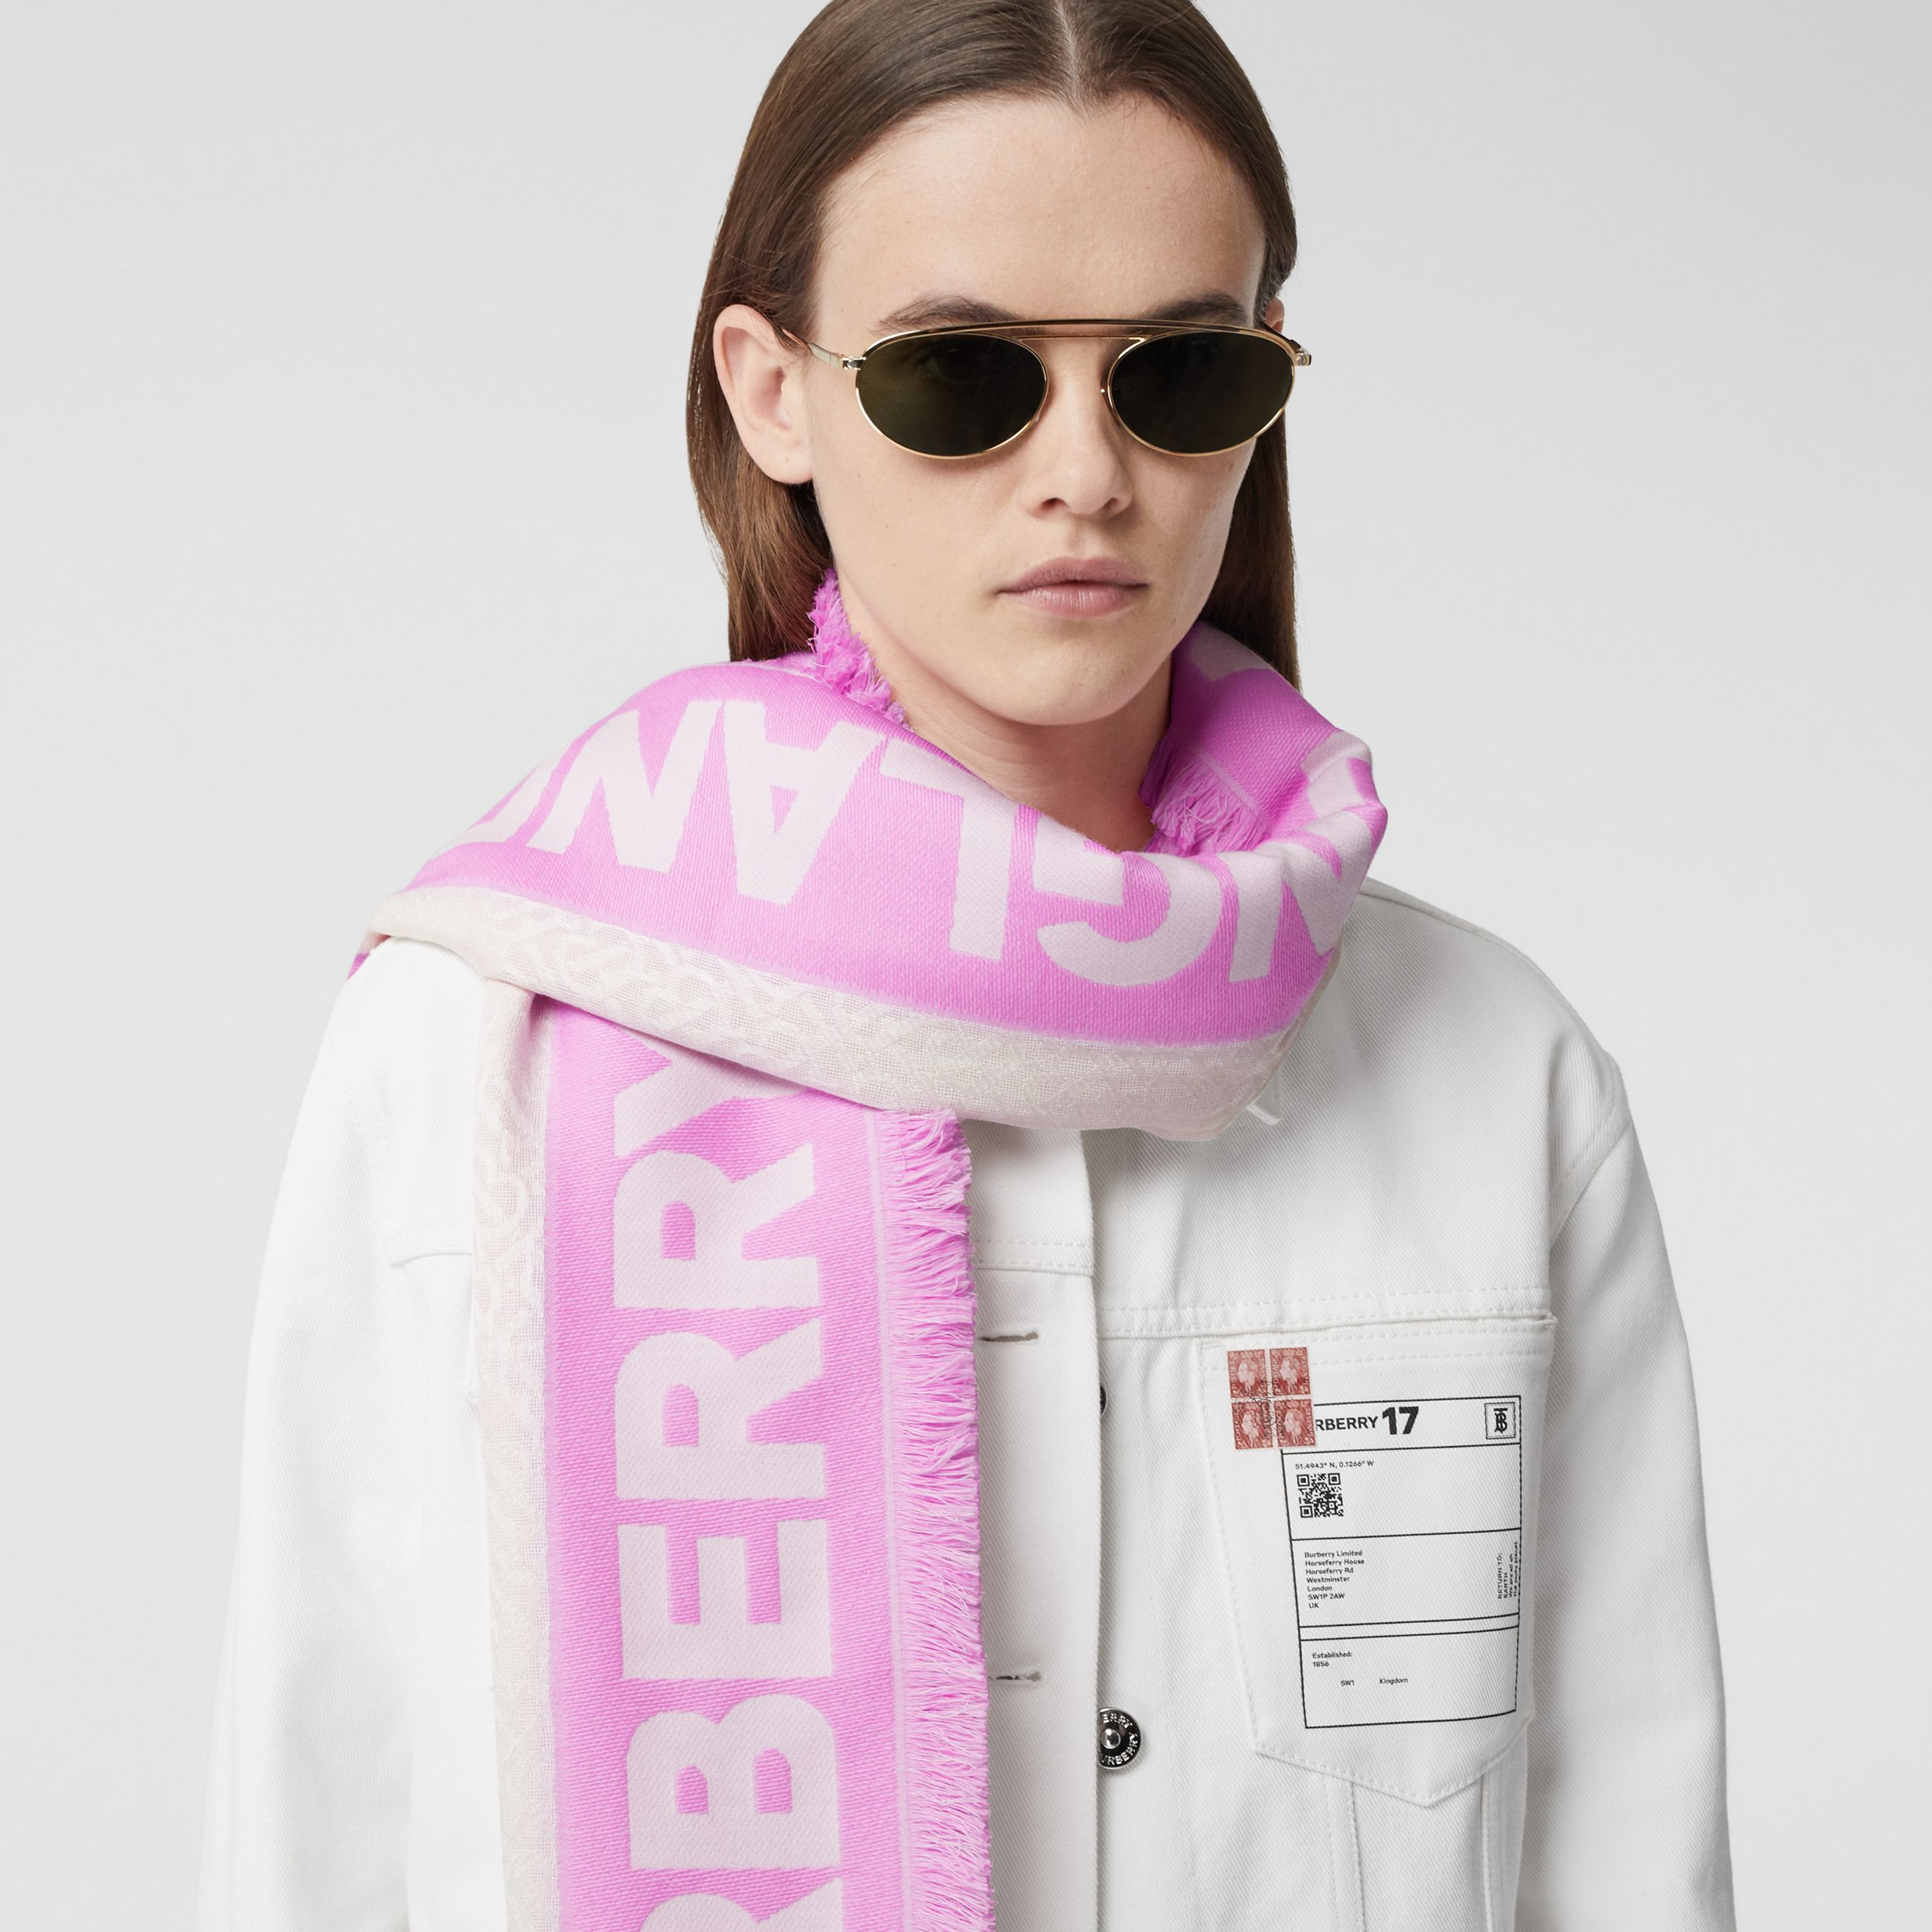 Monogram Fil Coupé Silk Blend Large Square Scarf in Pink | Burberry Australia - 3